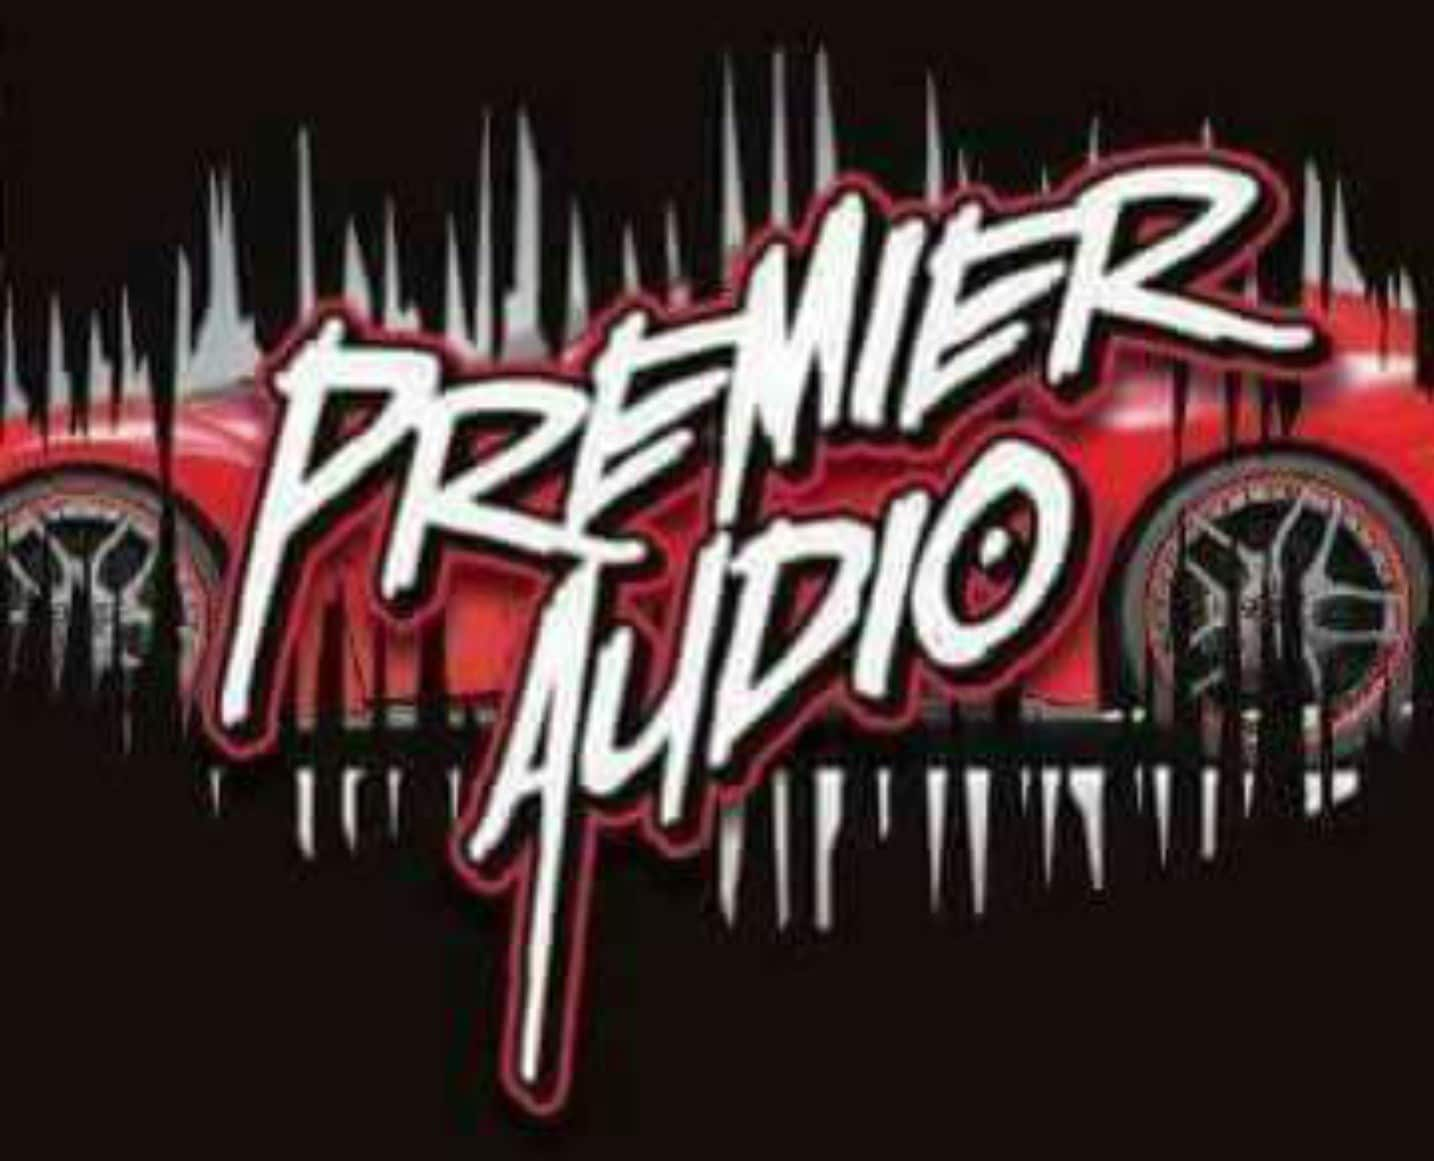 Premier Audio LLC